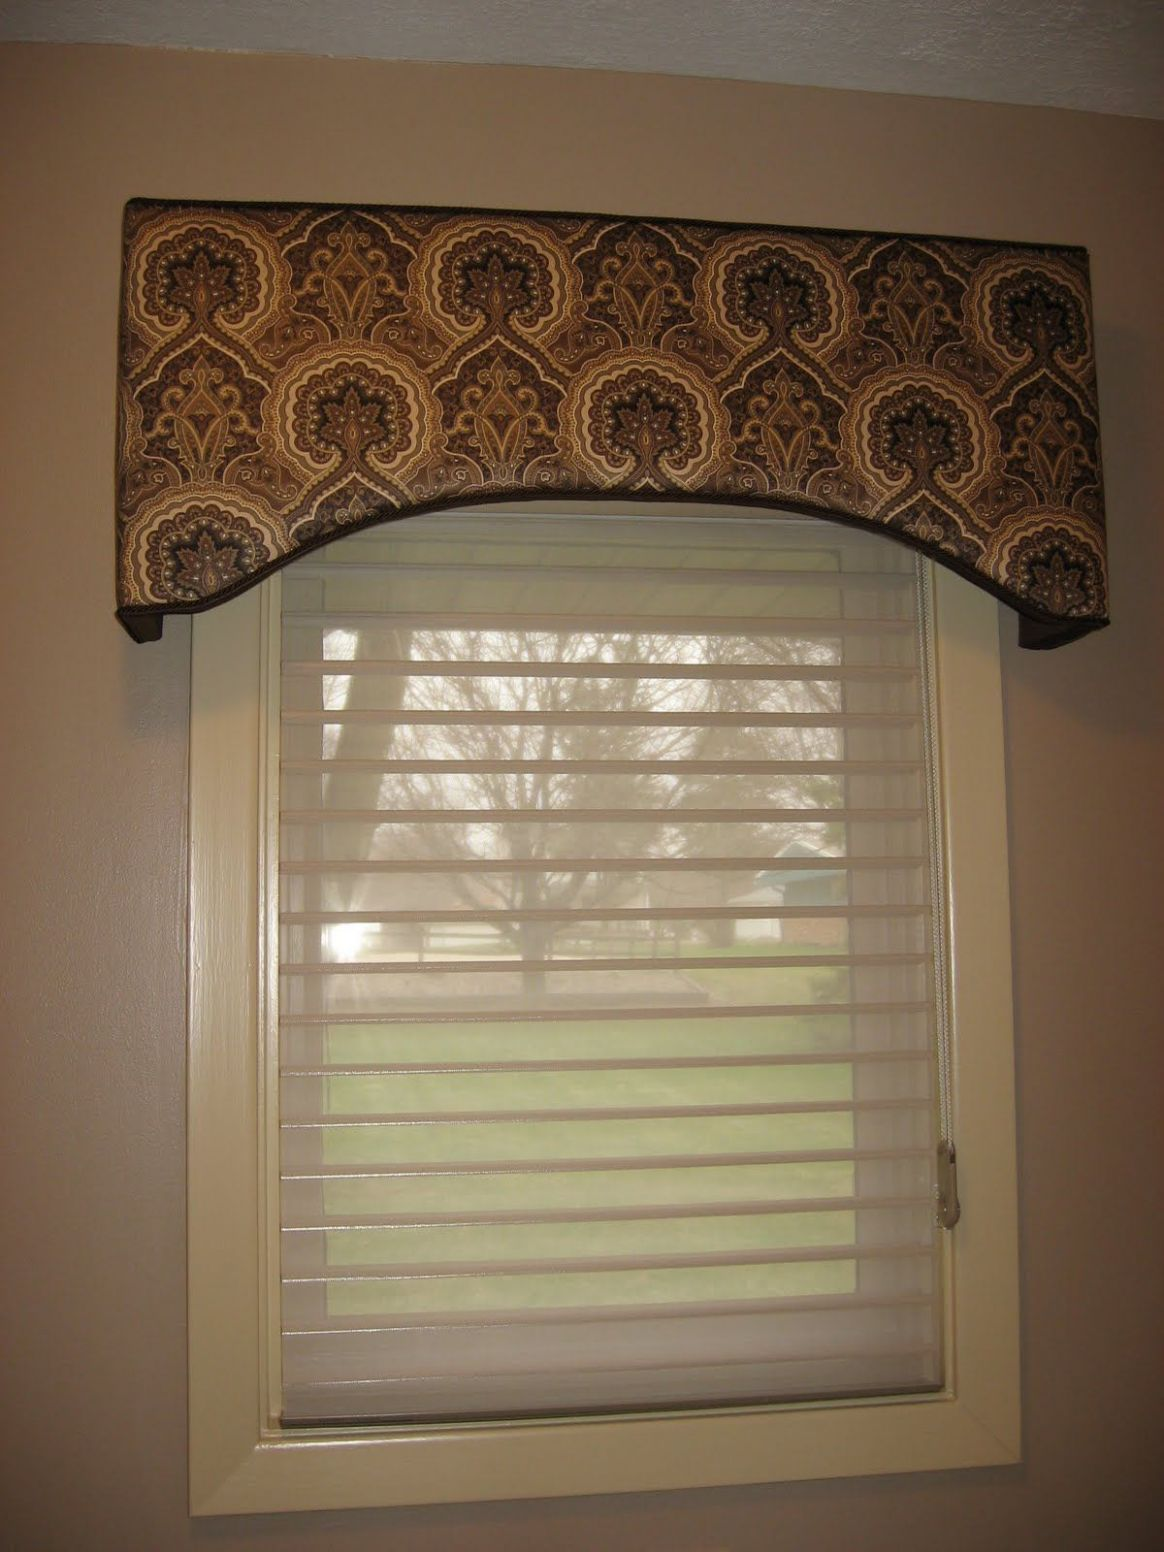 Gorgeous Custom Patterned Cornice with Shades Creations finest ..